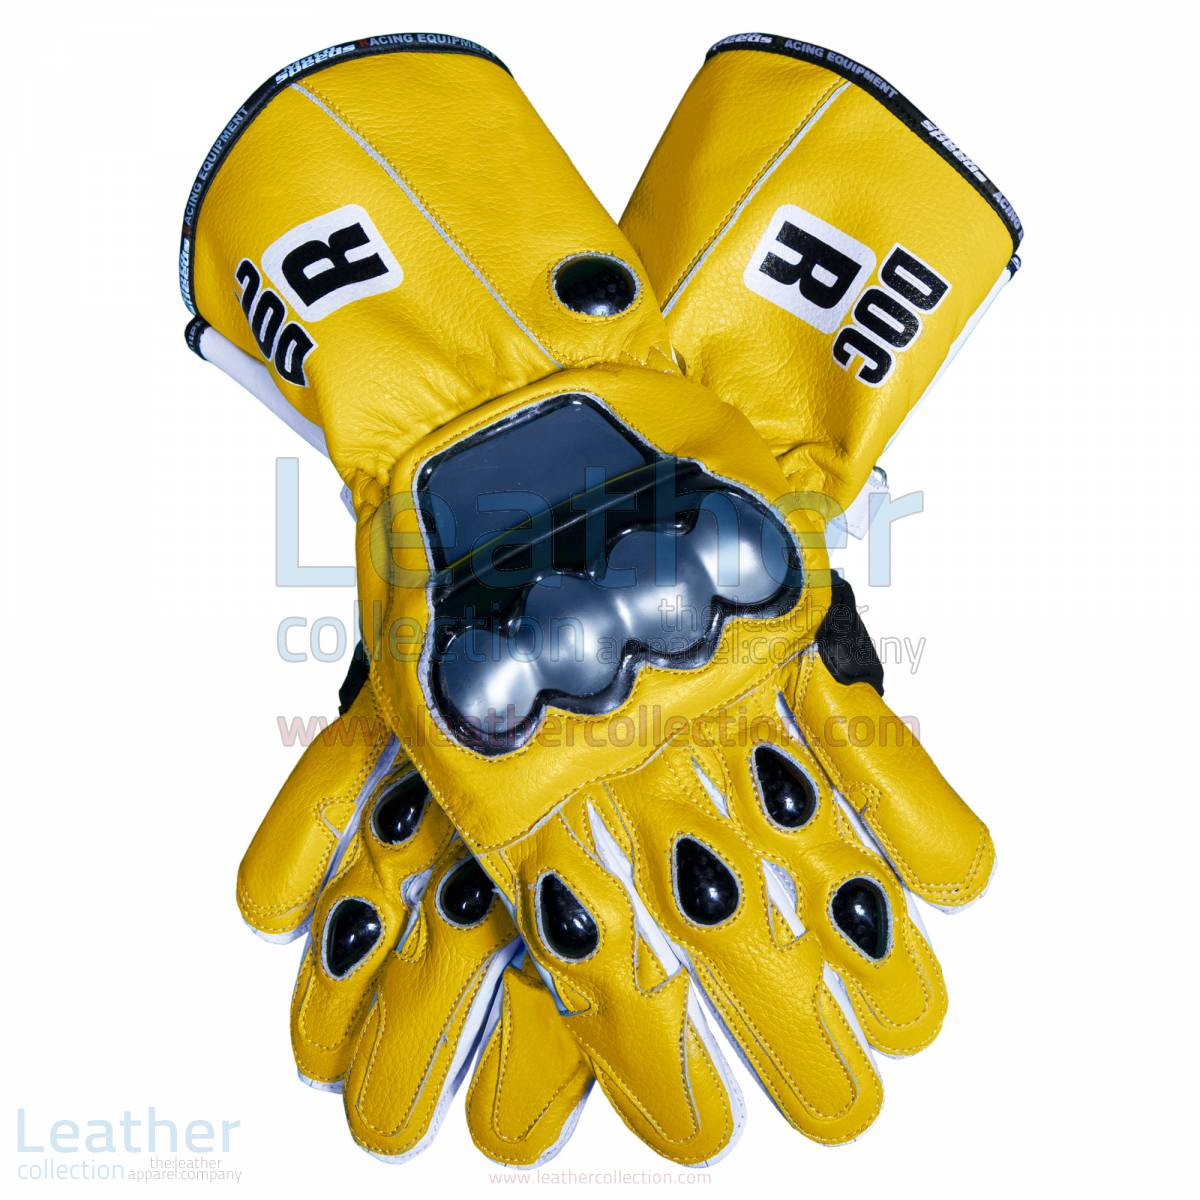 Valentino Rossi Yamaha MotoGP 2006 Racing Gloves – Yamaha Gloves